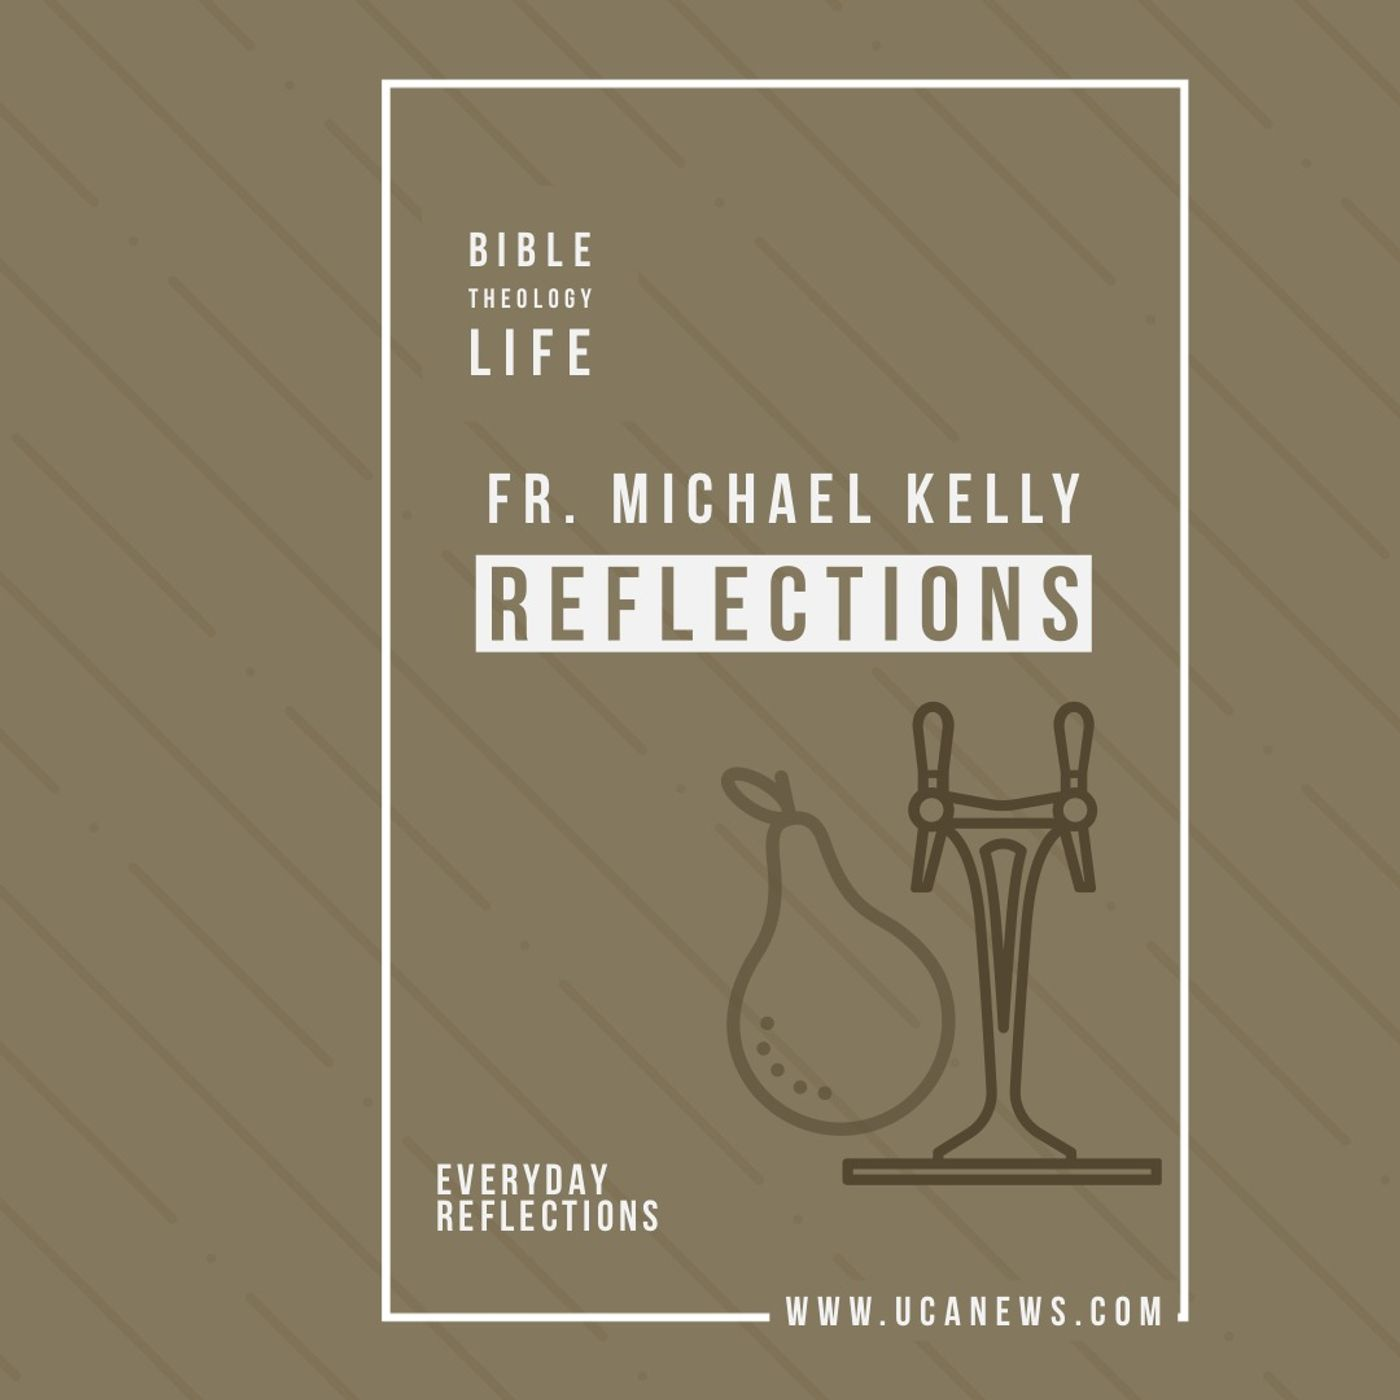 Reflections with Fr. Michael Kelly - Wednesday 15 Sept, 2021